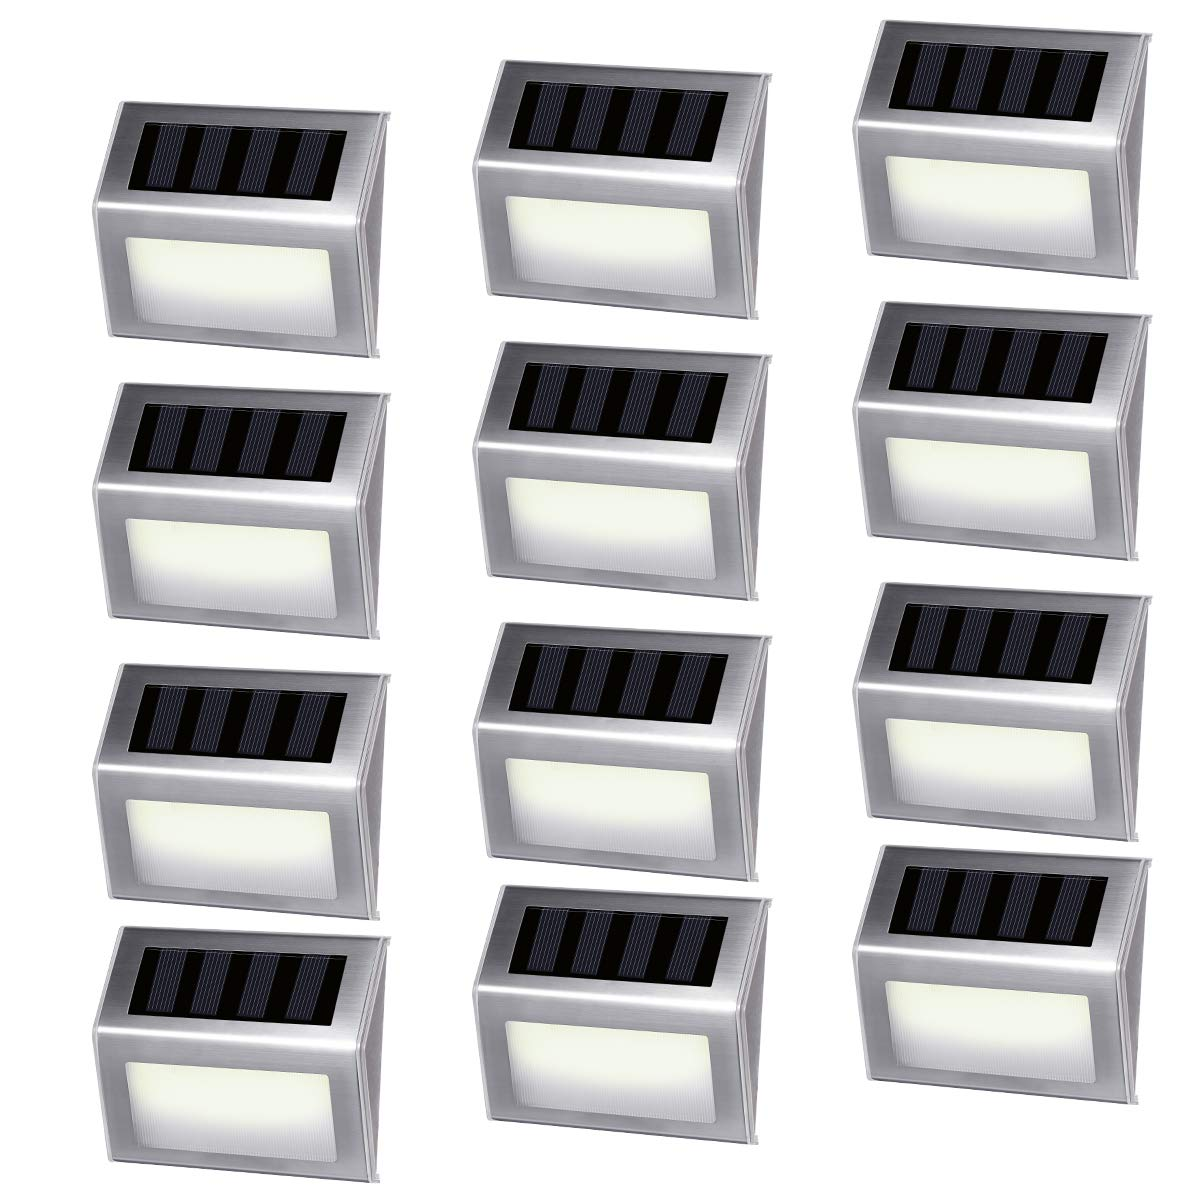 [12 Pack]iThird Solar Powered Step Lights 6 LED Solar Deck Lights Outdoor Warm White Stainless Steel Decoration for Stair Fence Path Auto ON/Off Weatherproof Upgrade by iThird